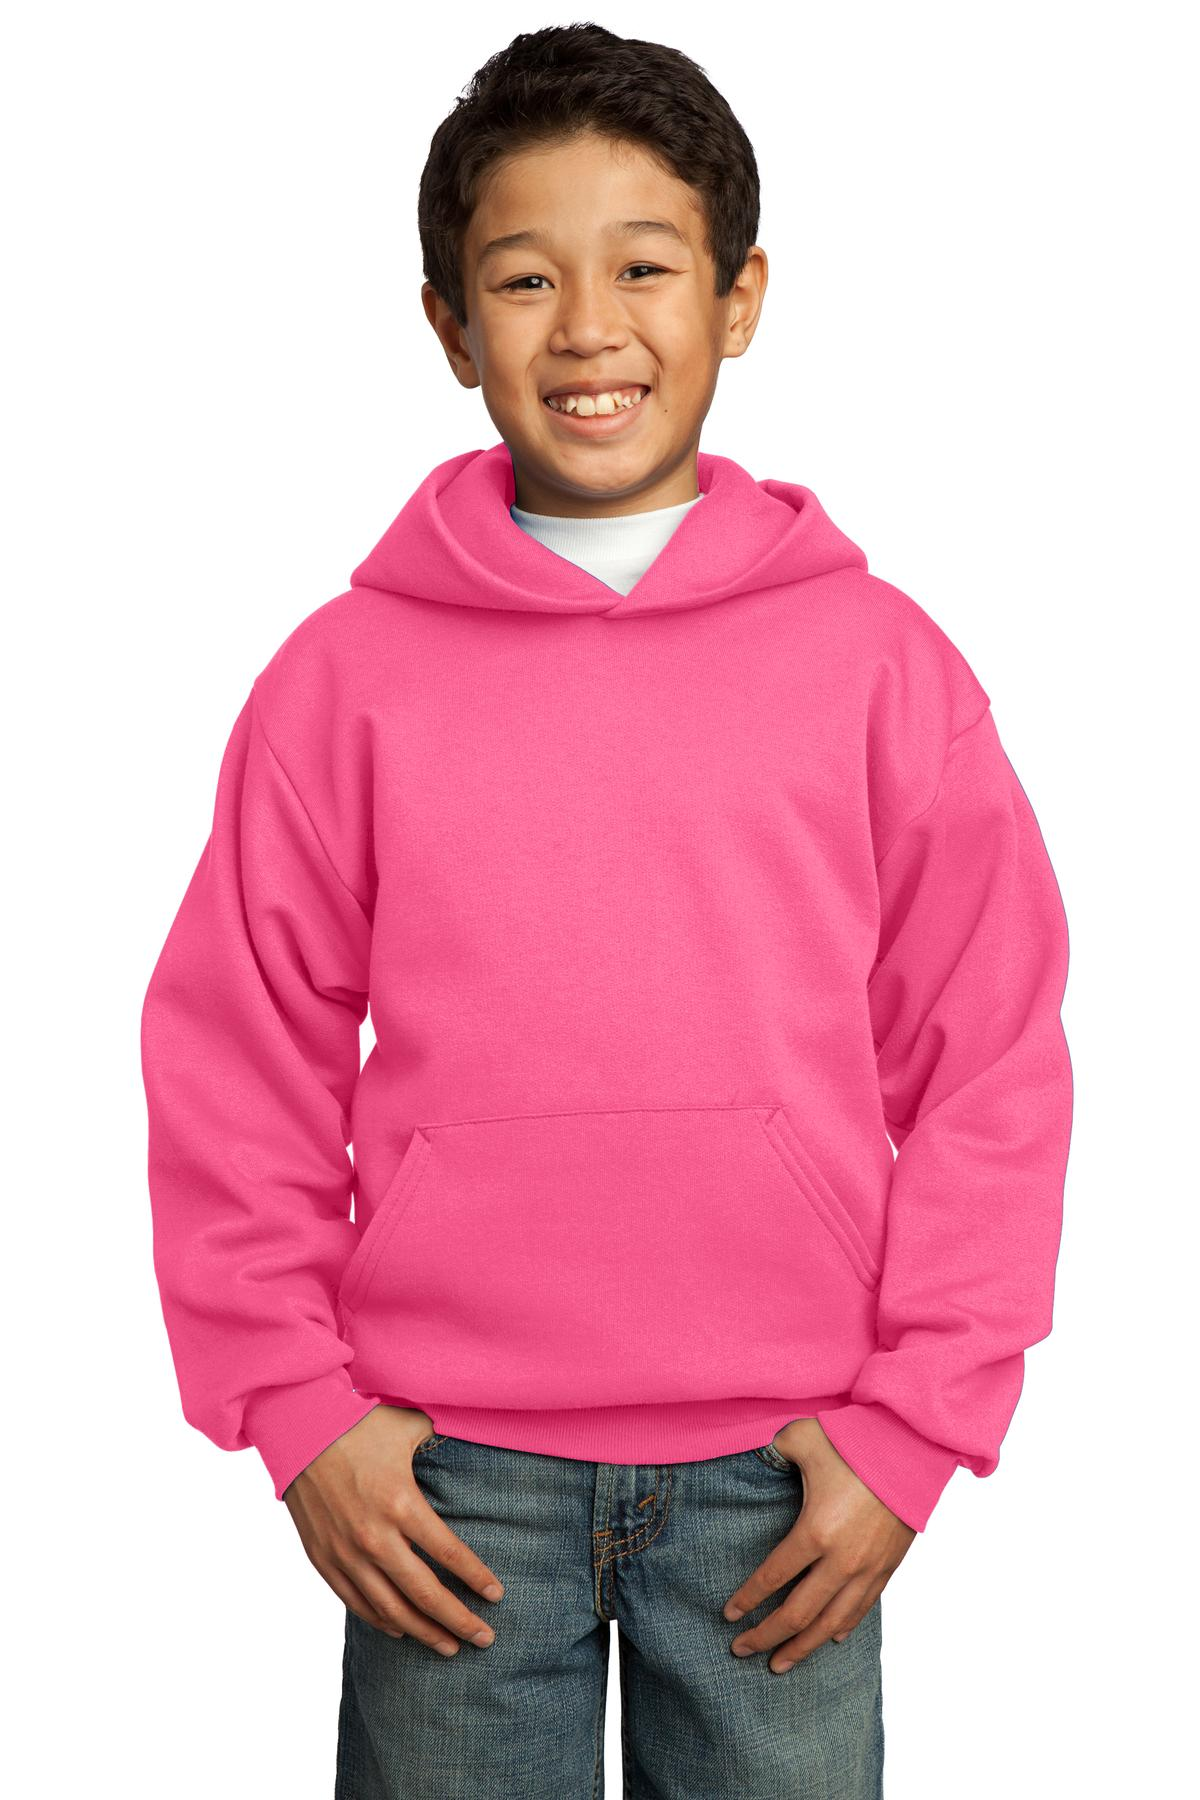 Neon Pink Port & Company - Youth Core Fleece Pullover Hooded Sweatshirt.